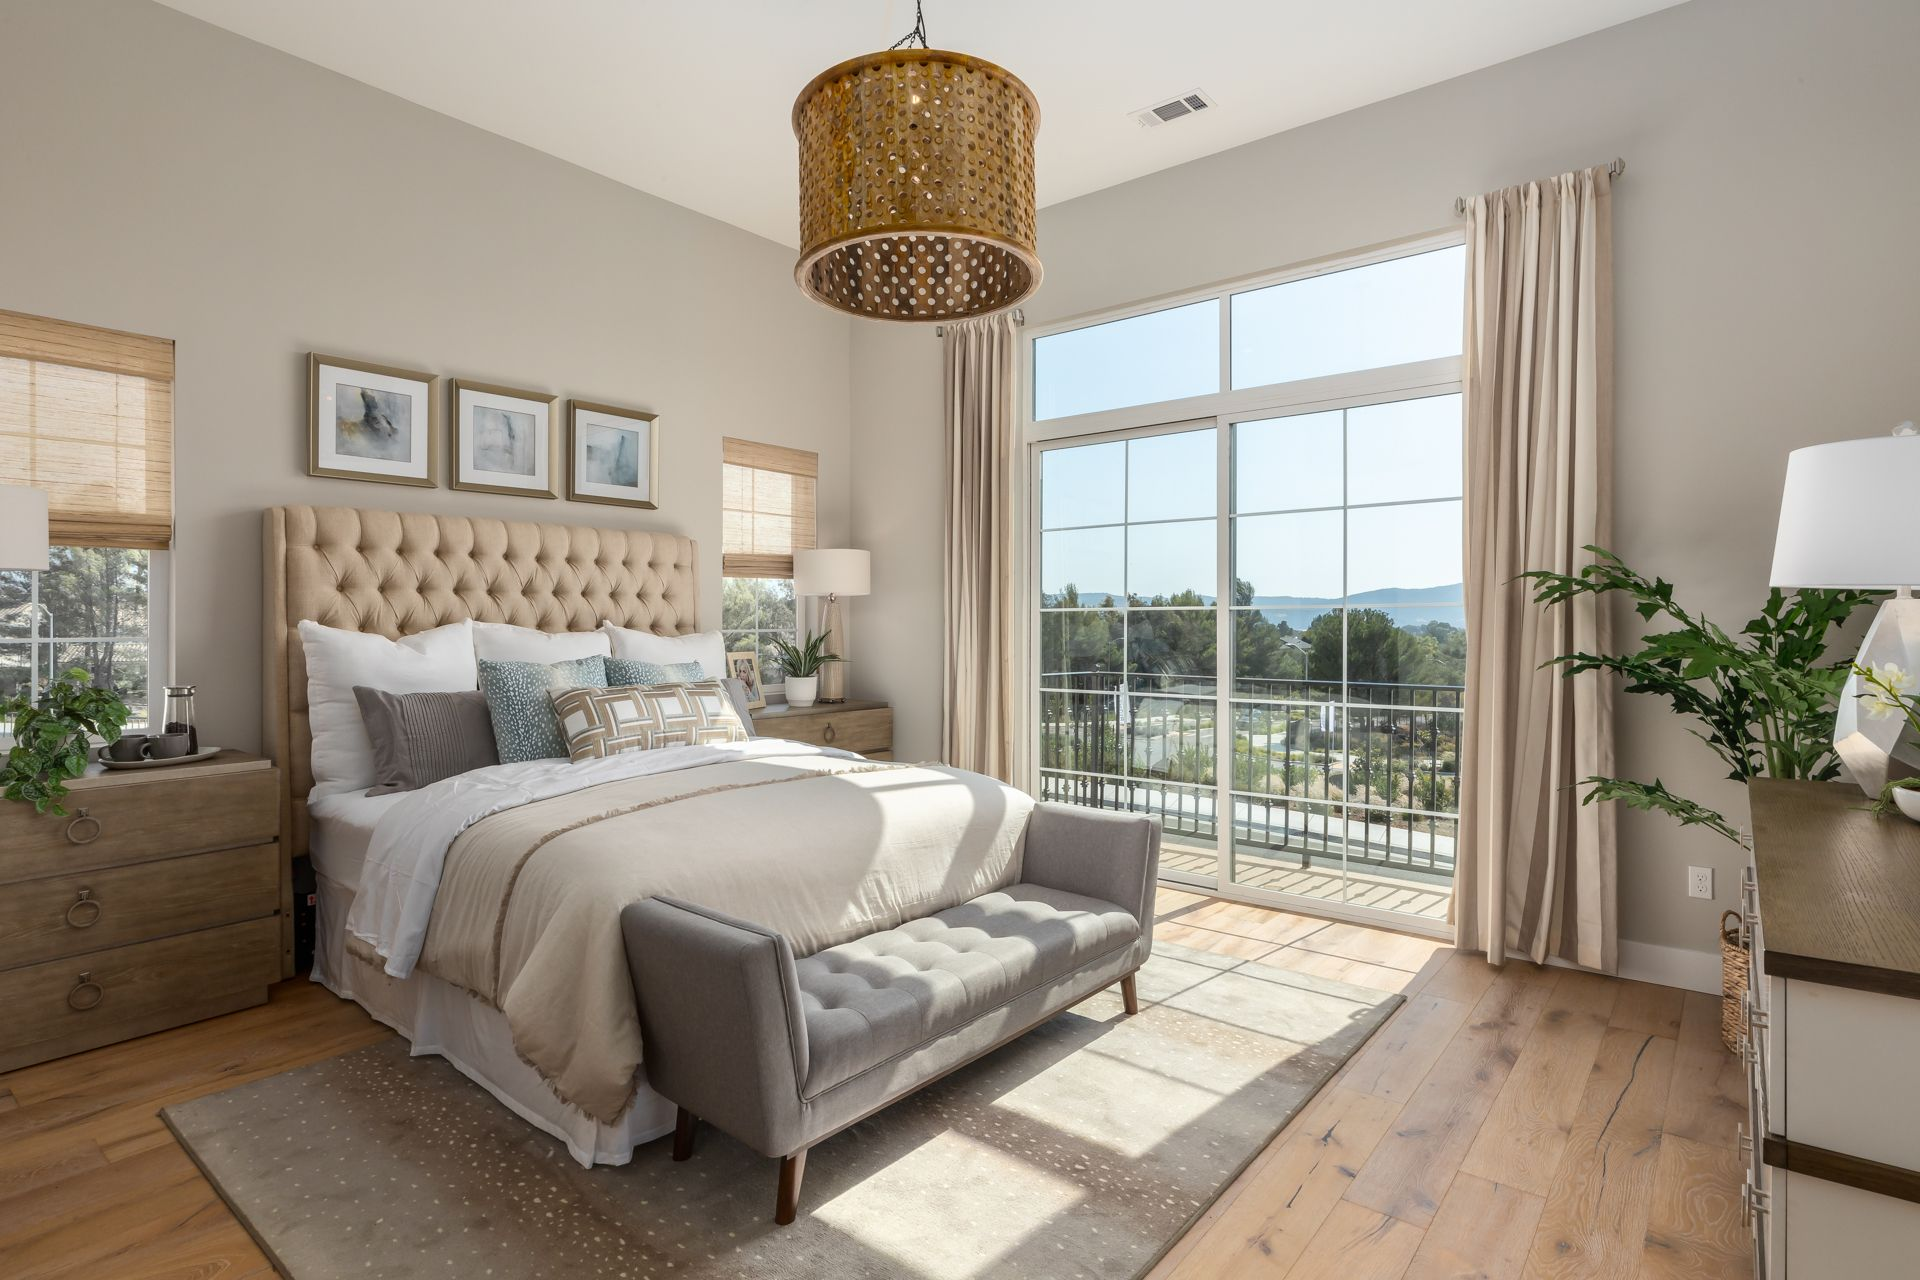 Bedroom featured in the Bishop By Ladera at Righetti in San Luis Obispo, CA